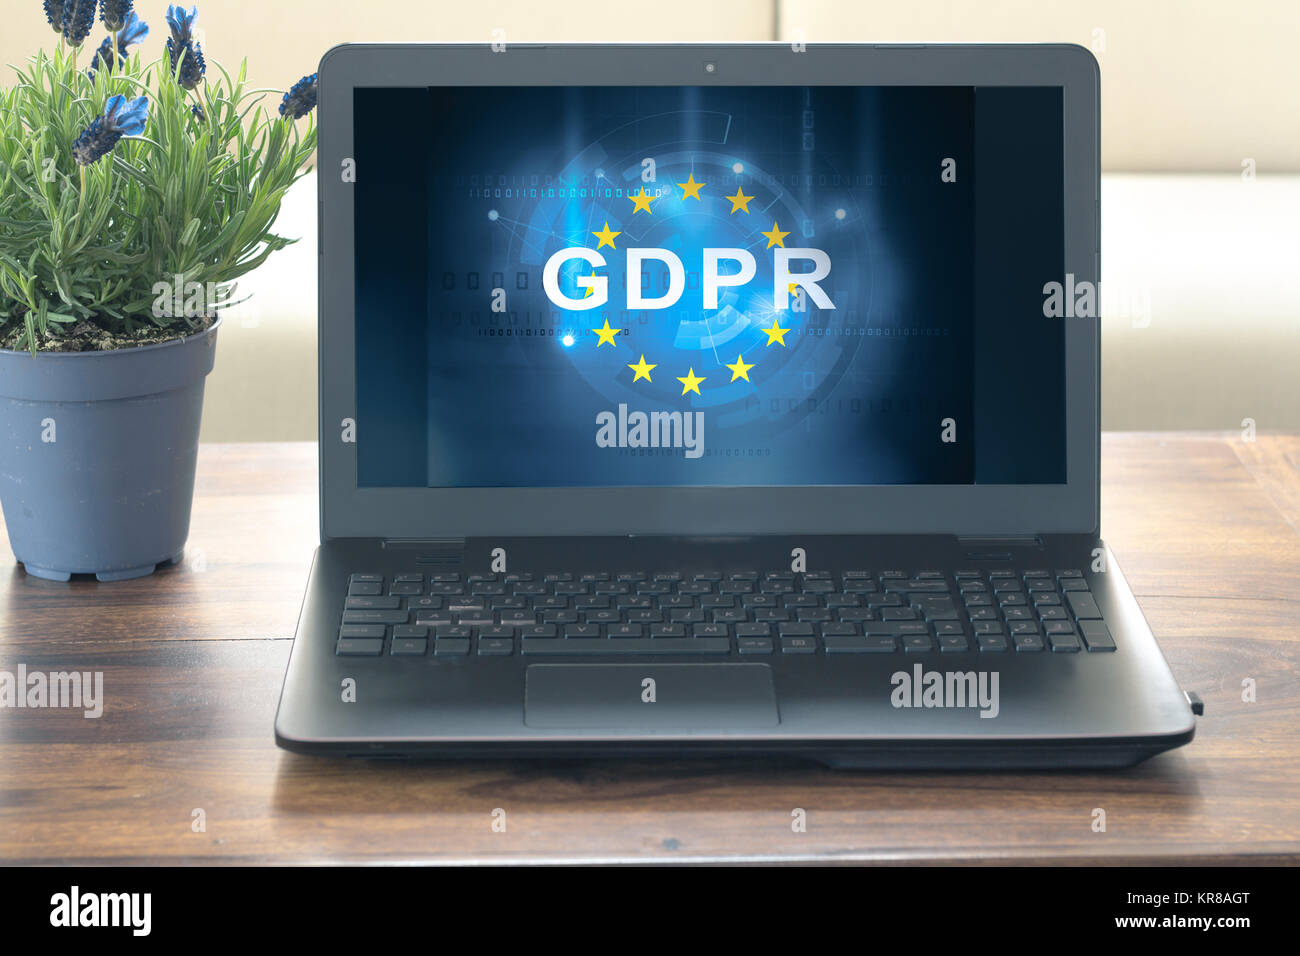 gdpr text on computer screen - Stock Image